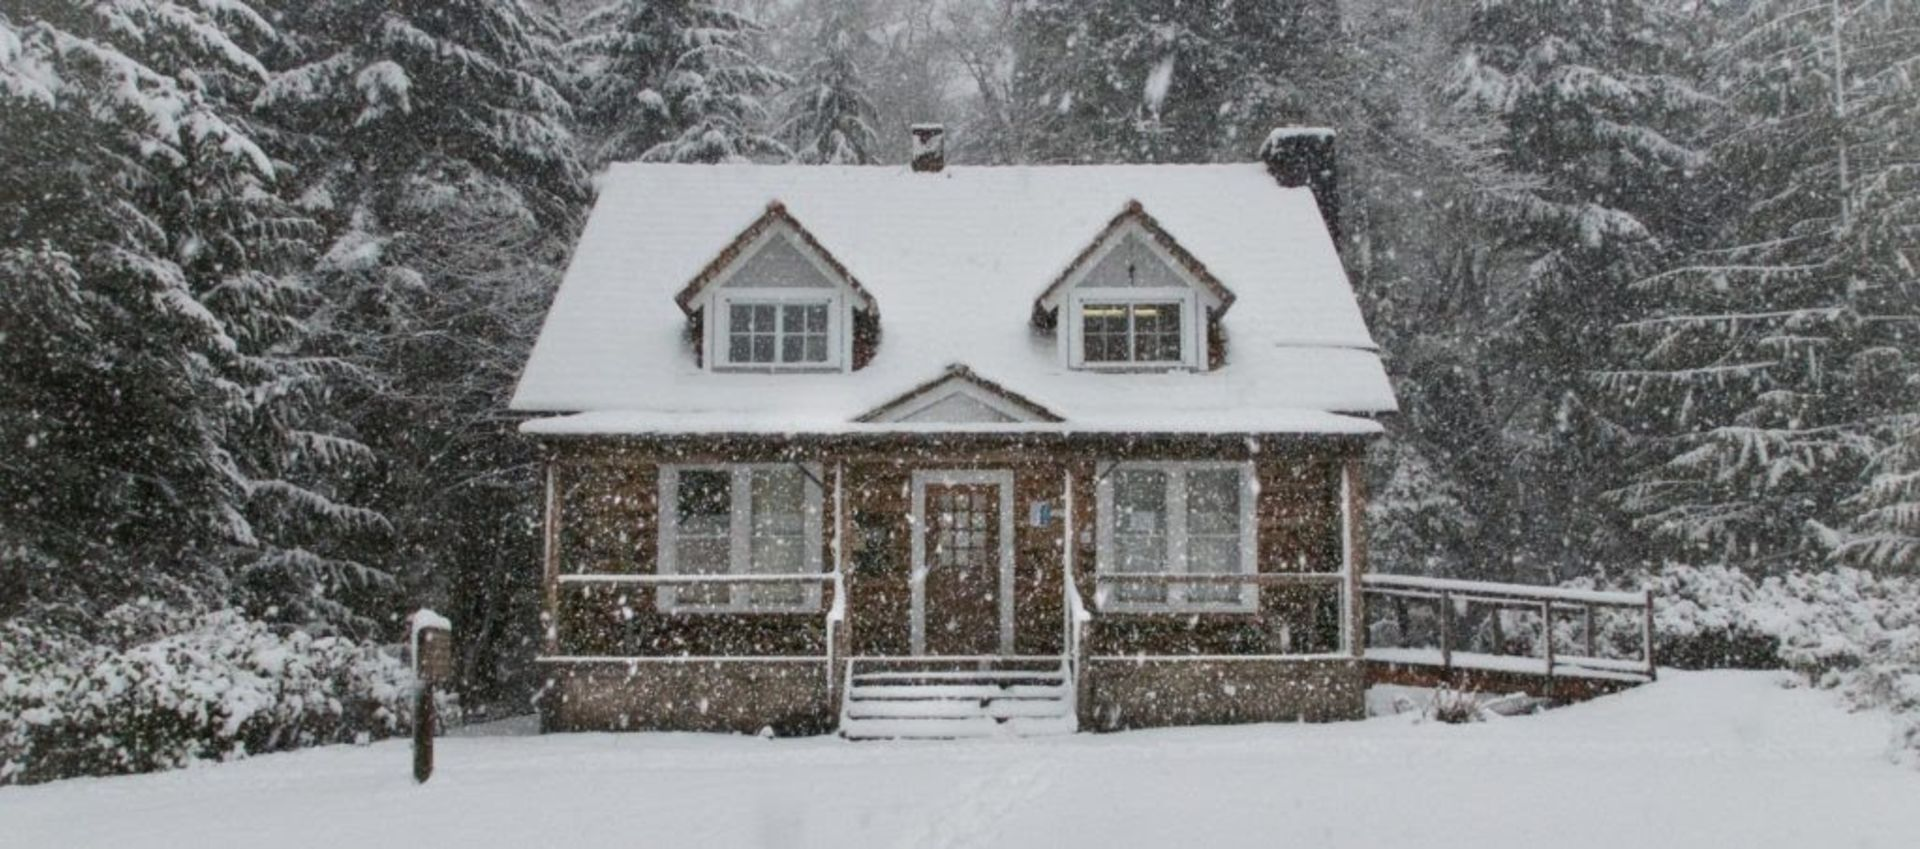 5 reasons to buy a home in the offseason